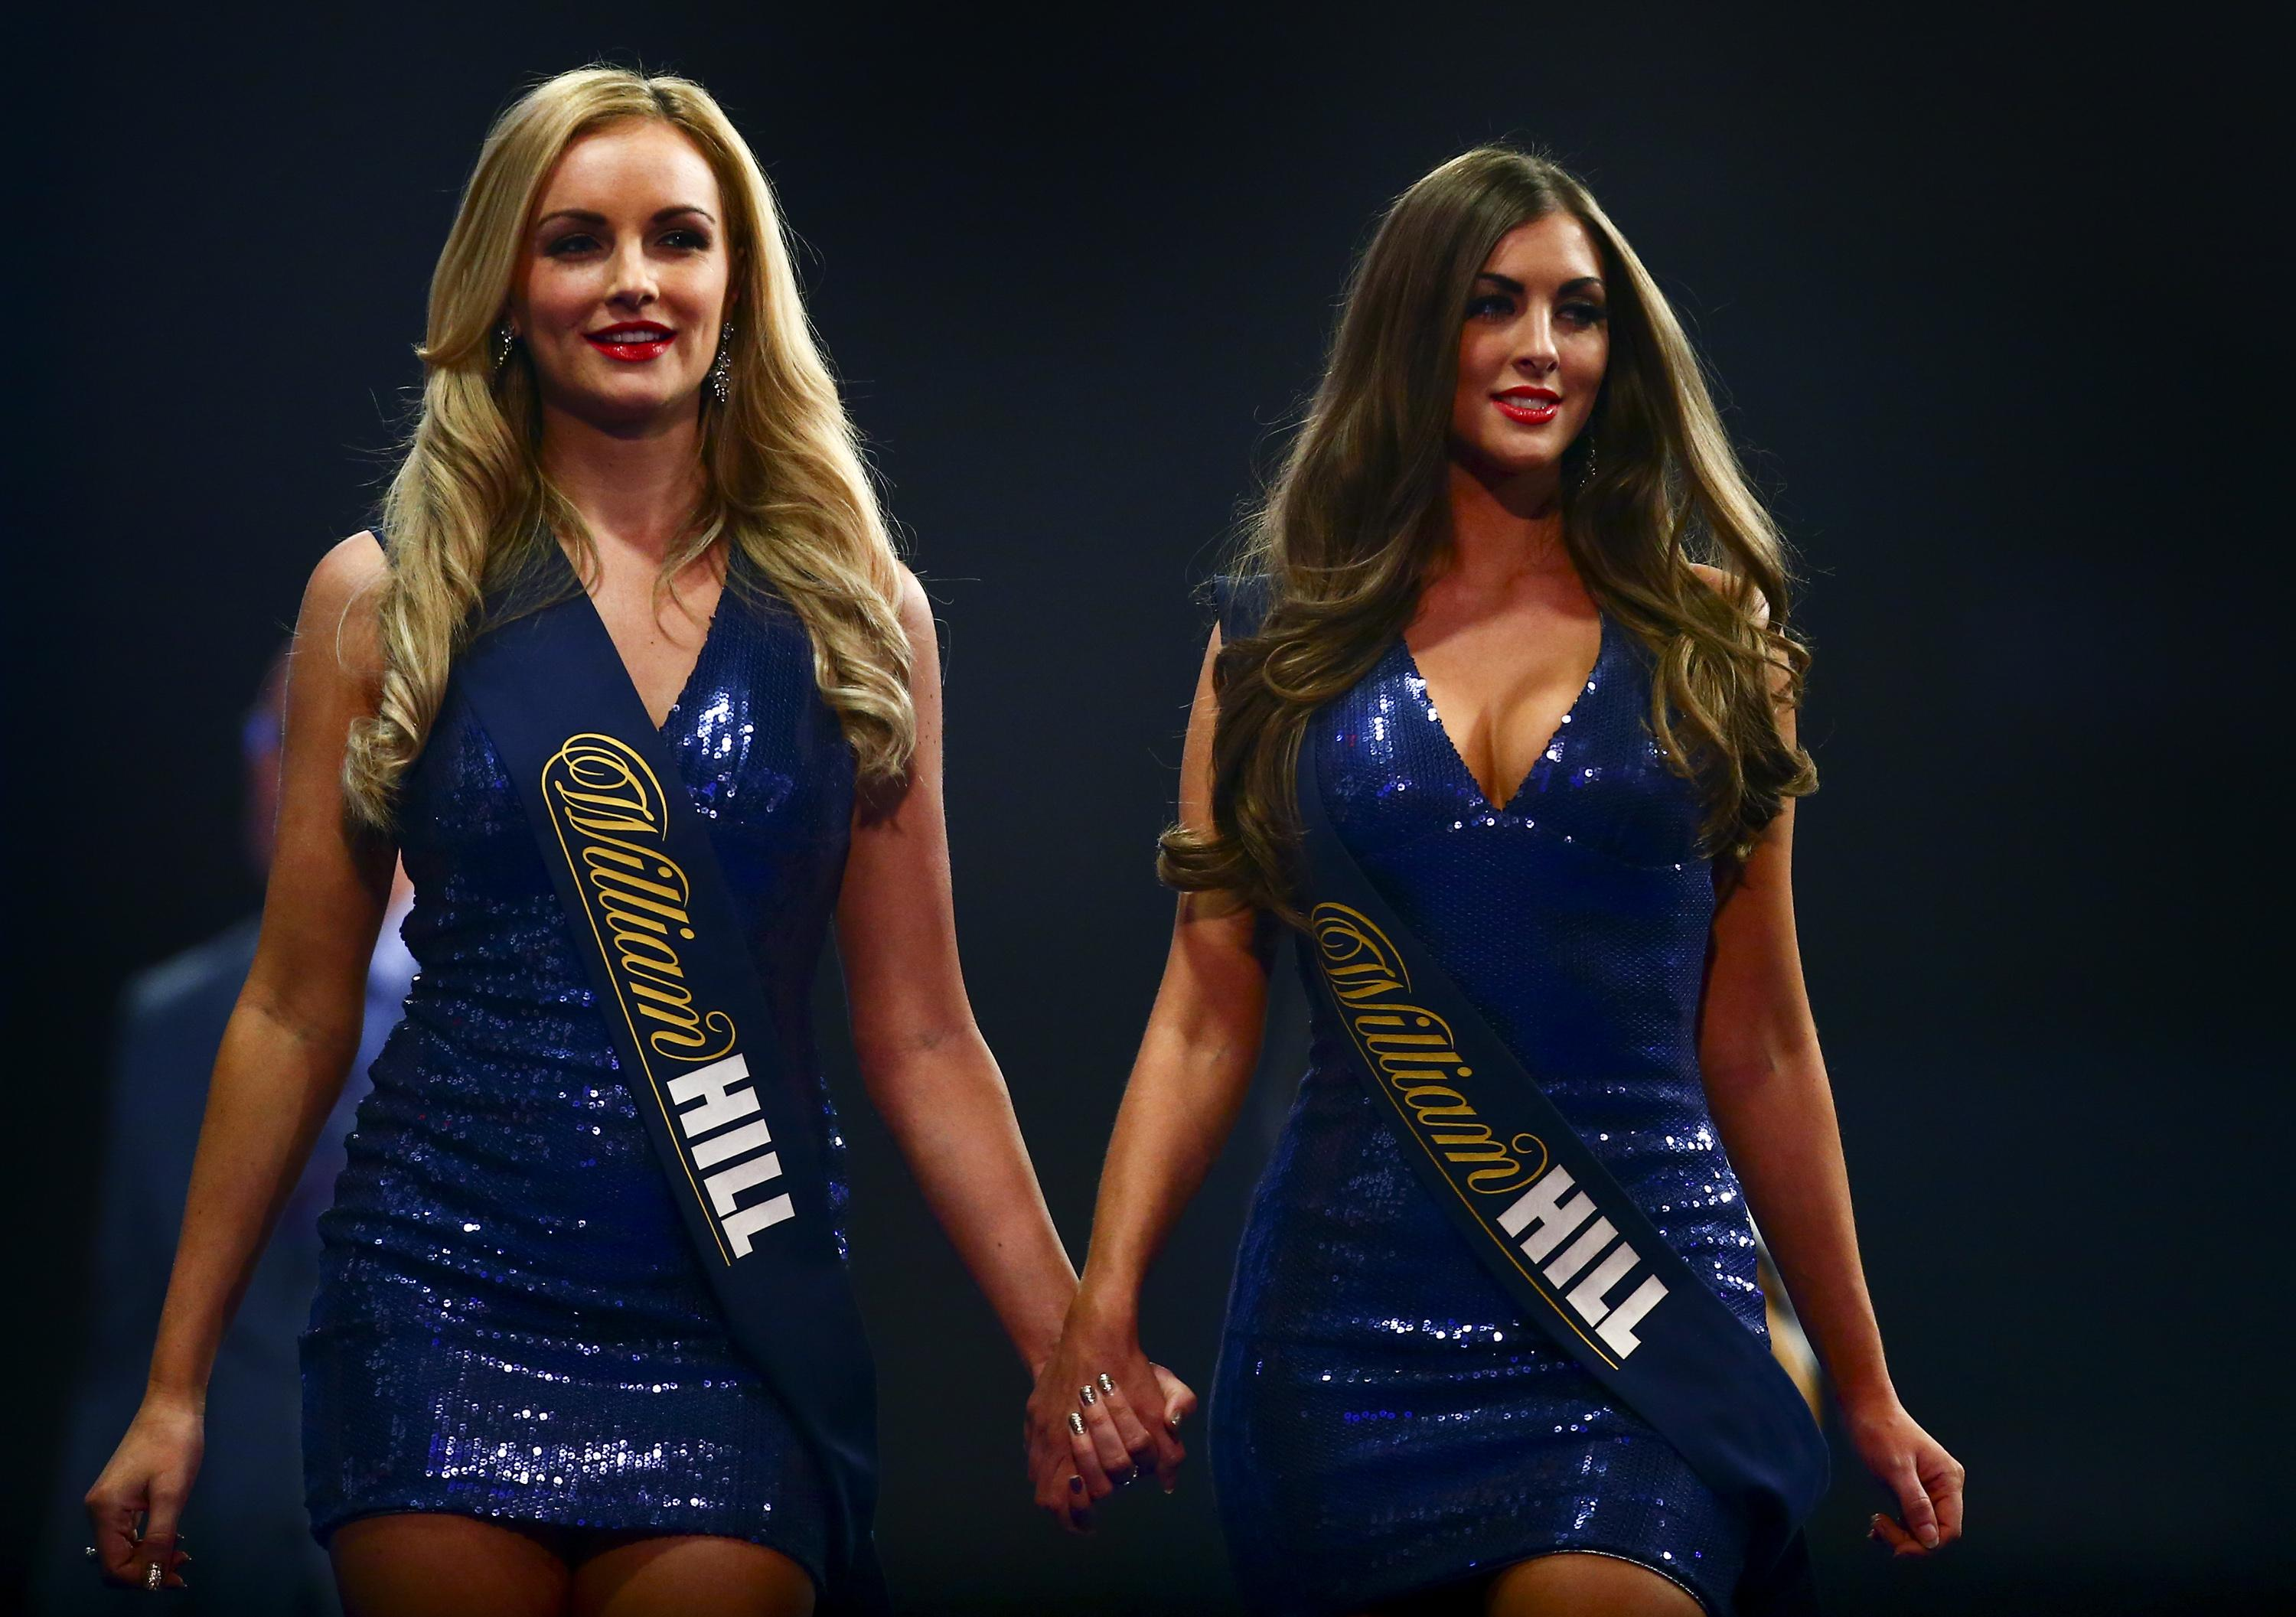 Darts led the way by dropping the use of walk-on girls